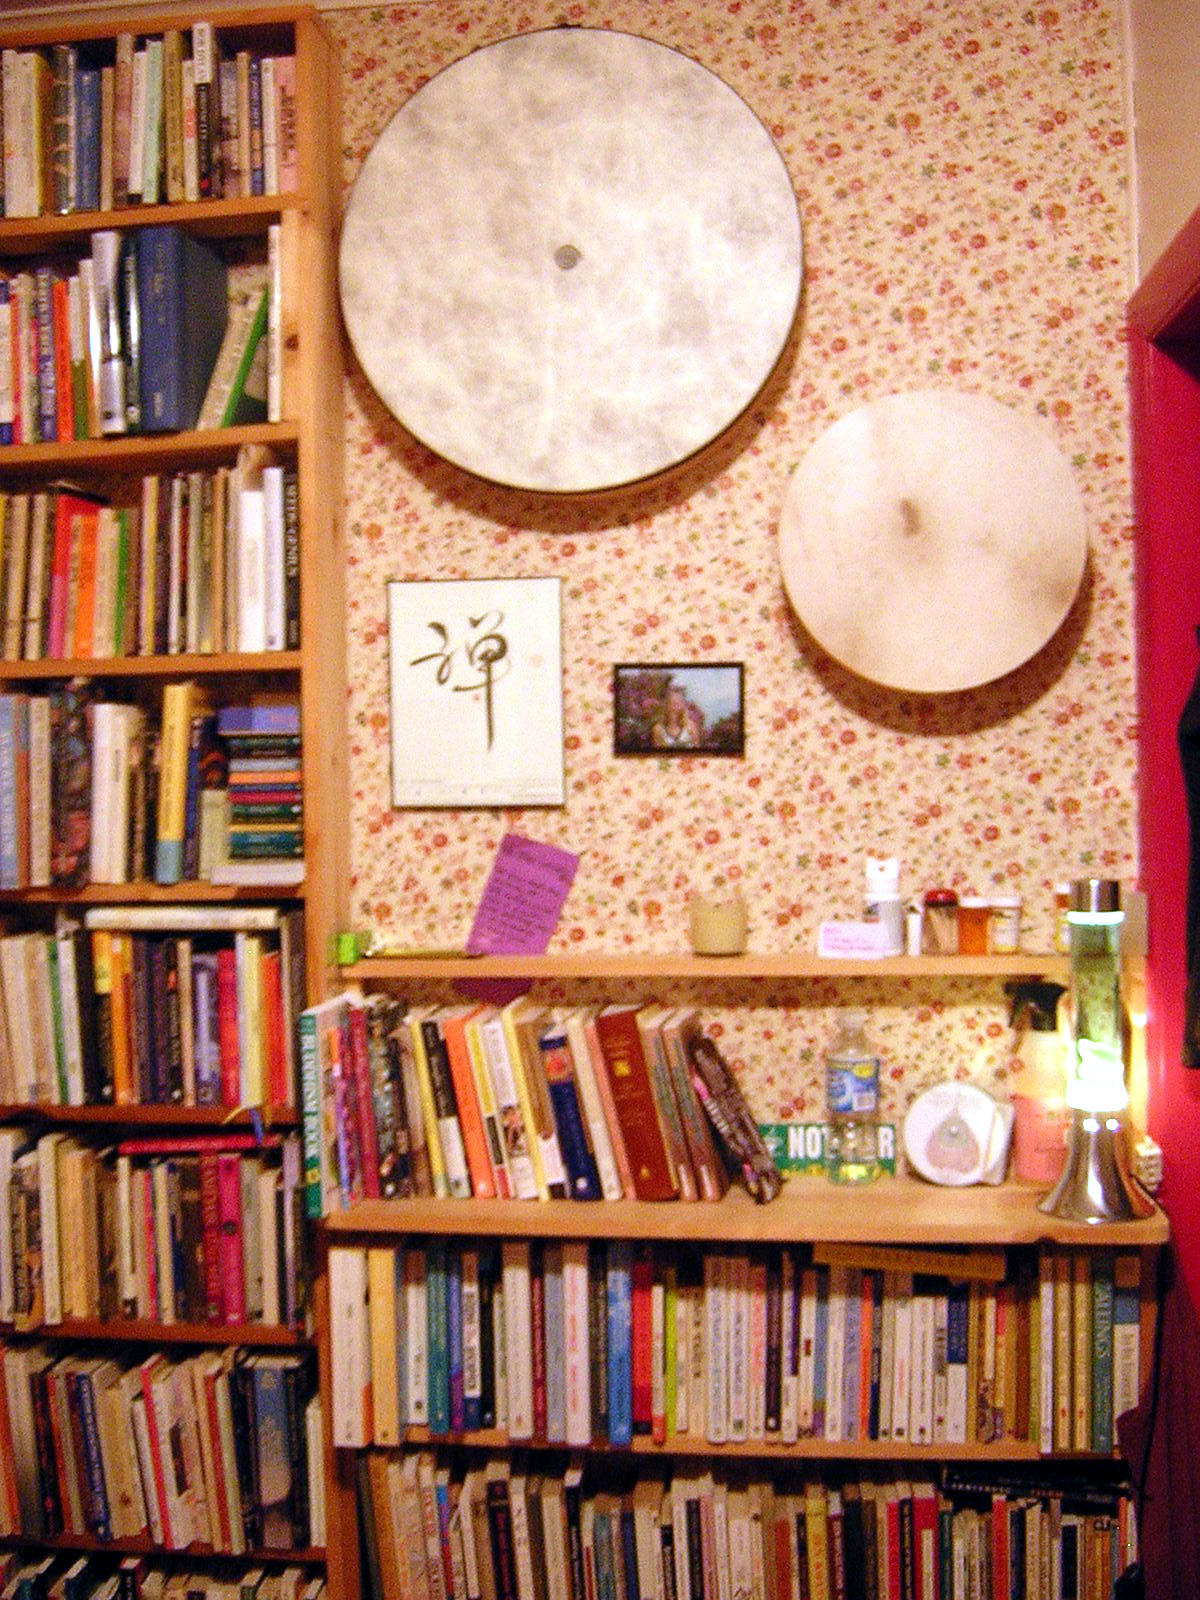 The Endless Bookshelf Simply Messing About In Books By Henry Wessells Shelves